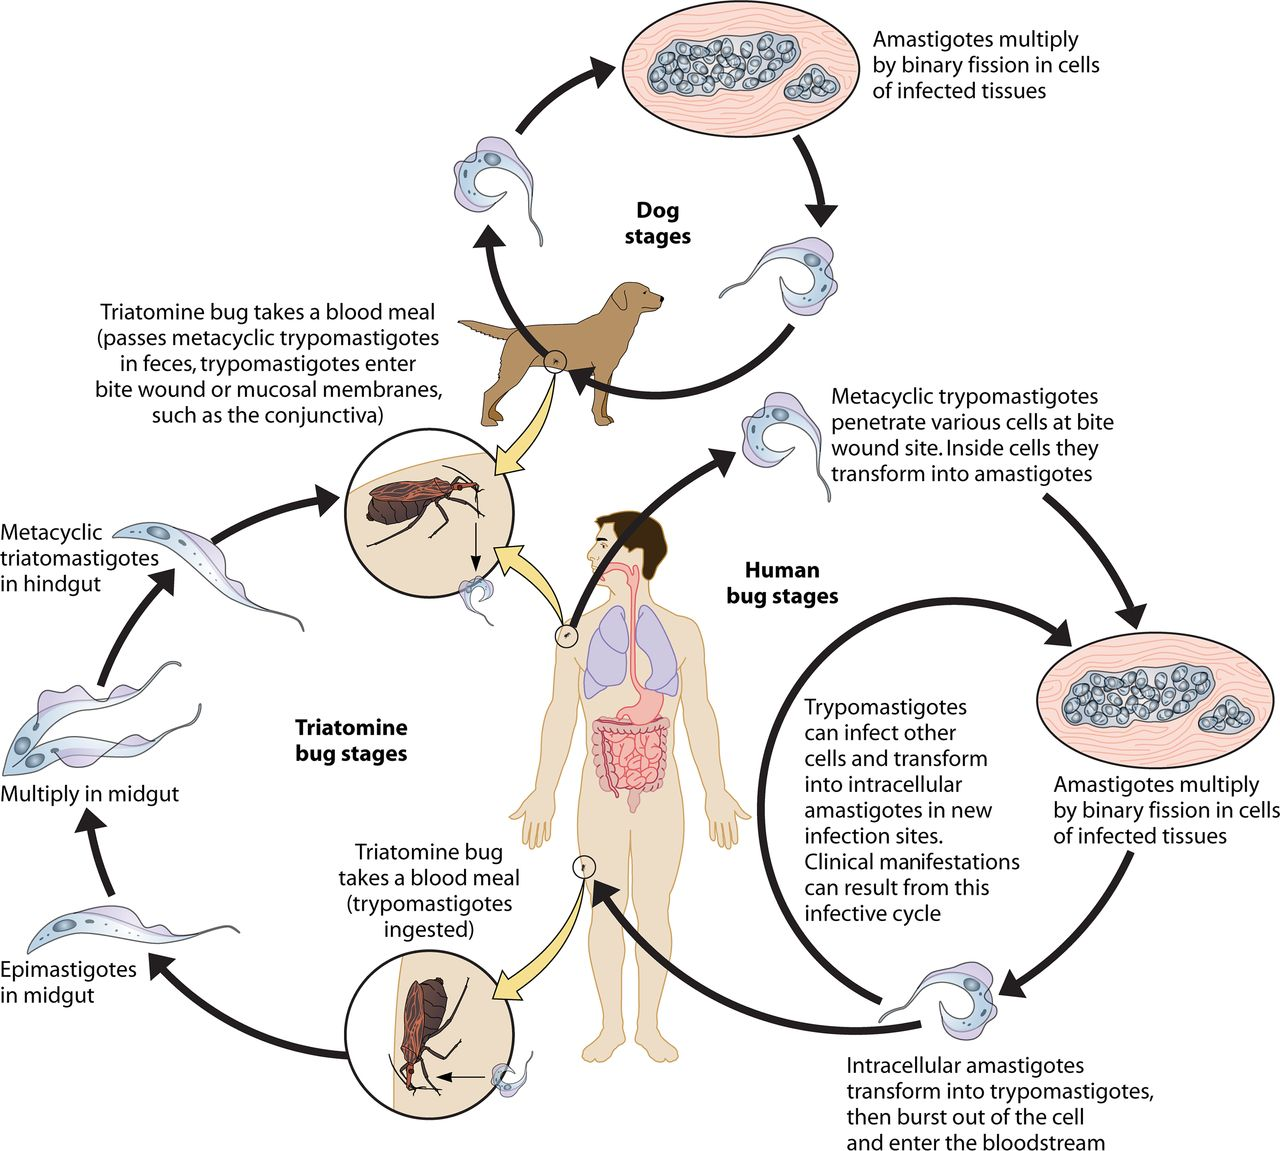 Zoonotic helminth infection that causes blindness - Gejala enterobiasis, Much more than documents.